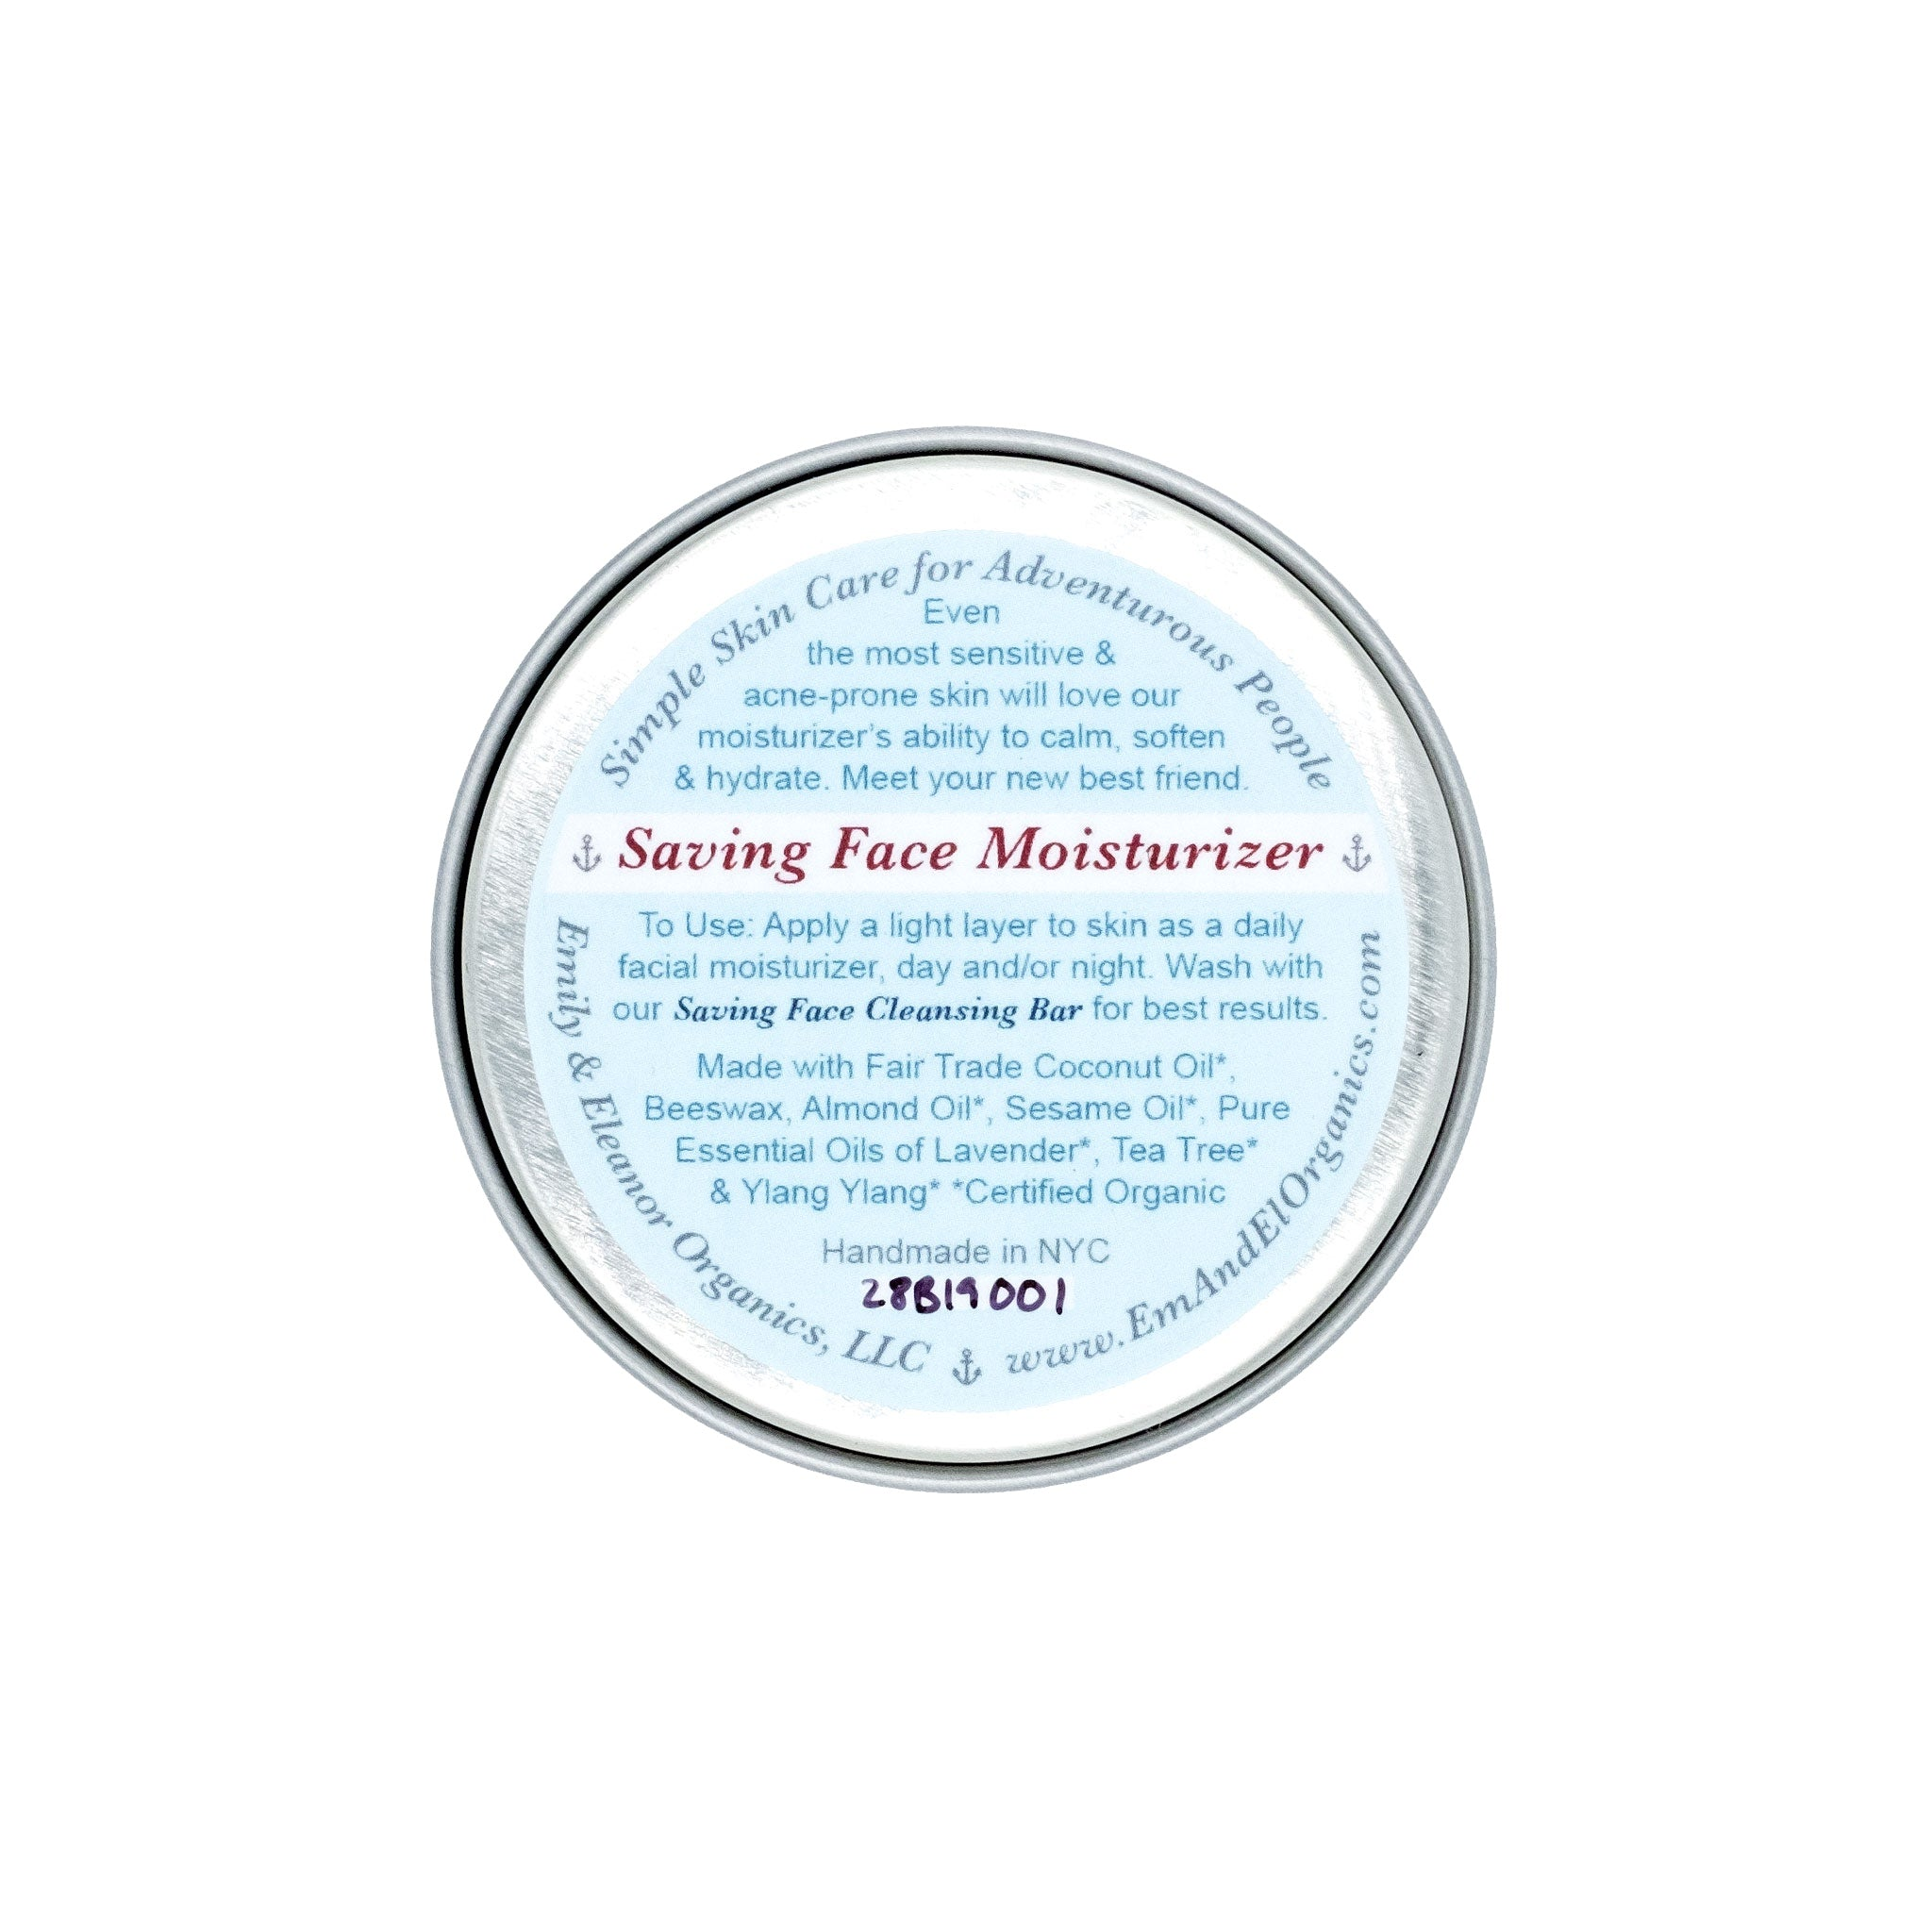 1.5 oz steel tin of Organic Anti-Acne & Sensitive Skin Face Moisturizer